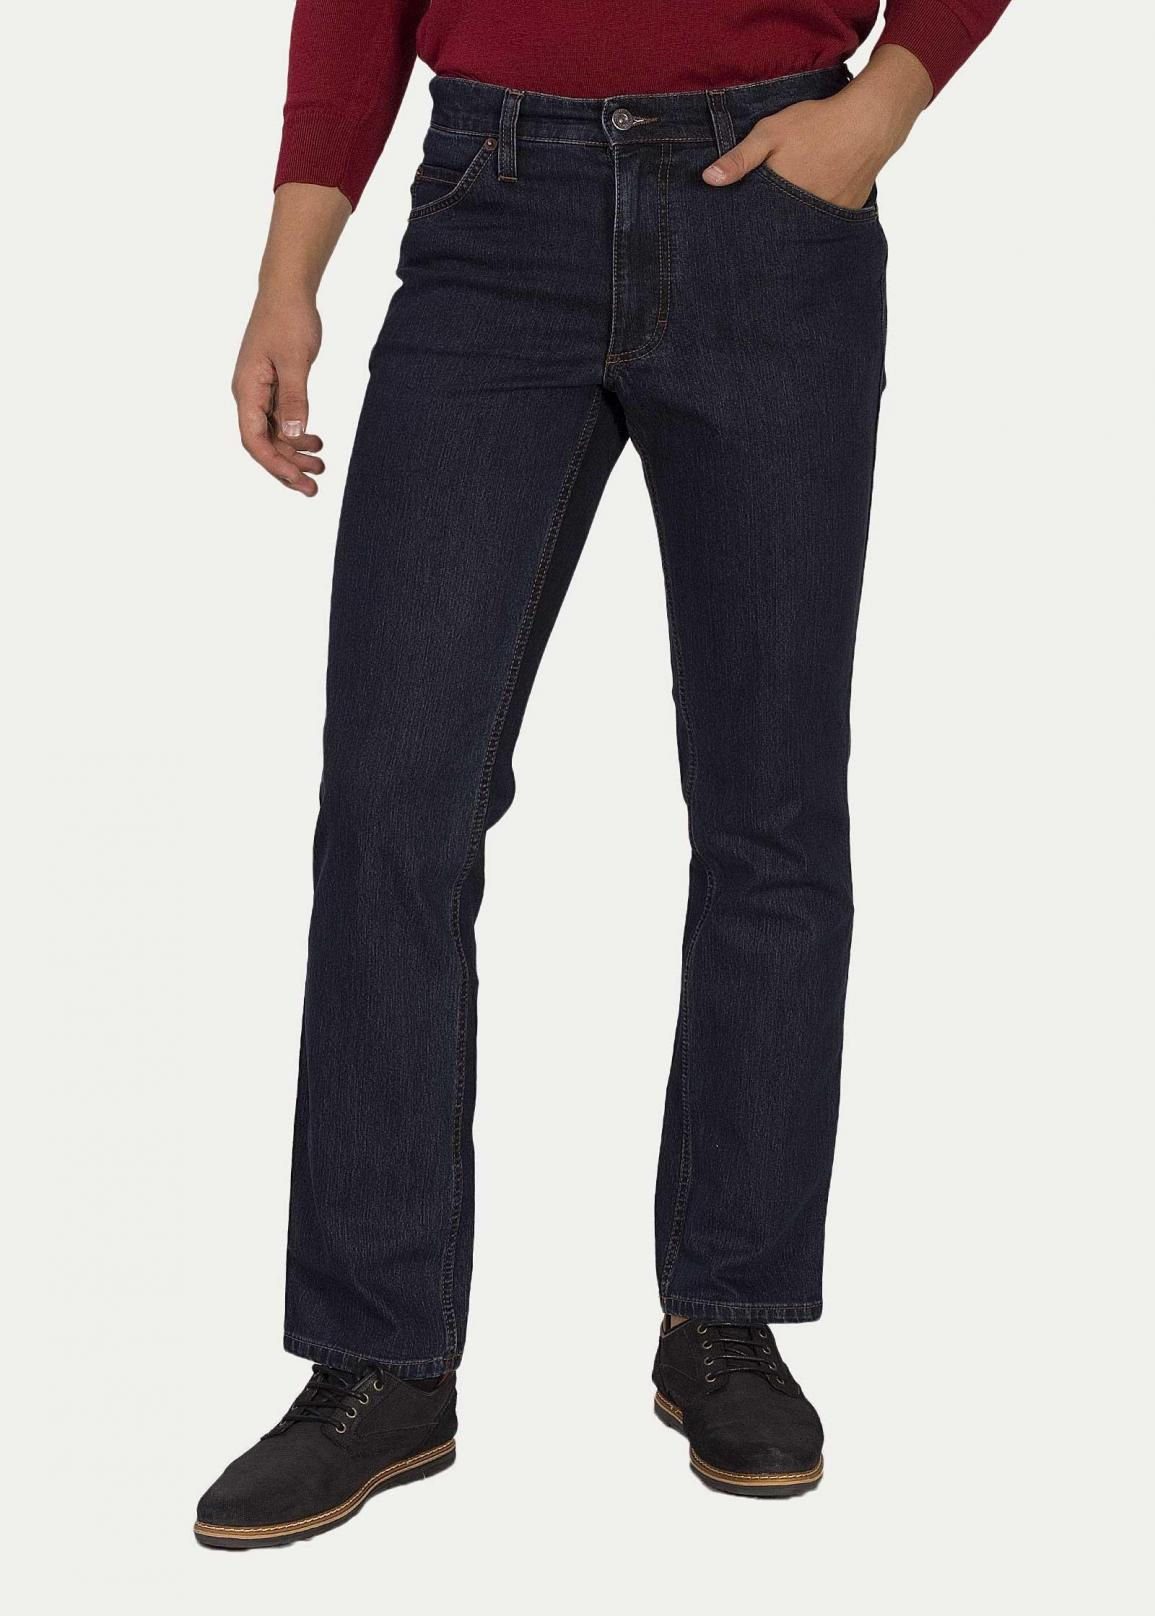 Mustang® Tramper - 880 Denim Blue